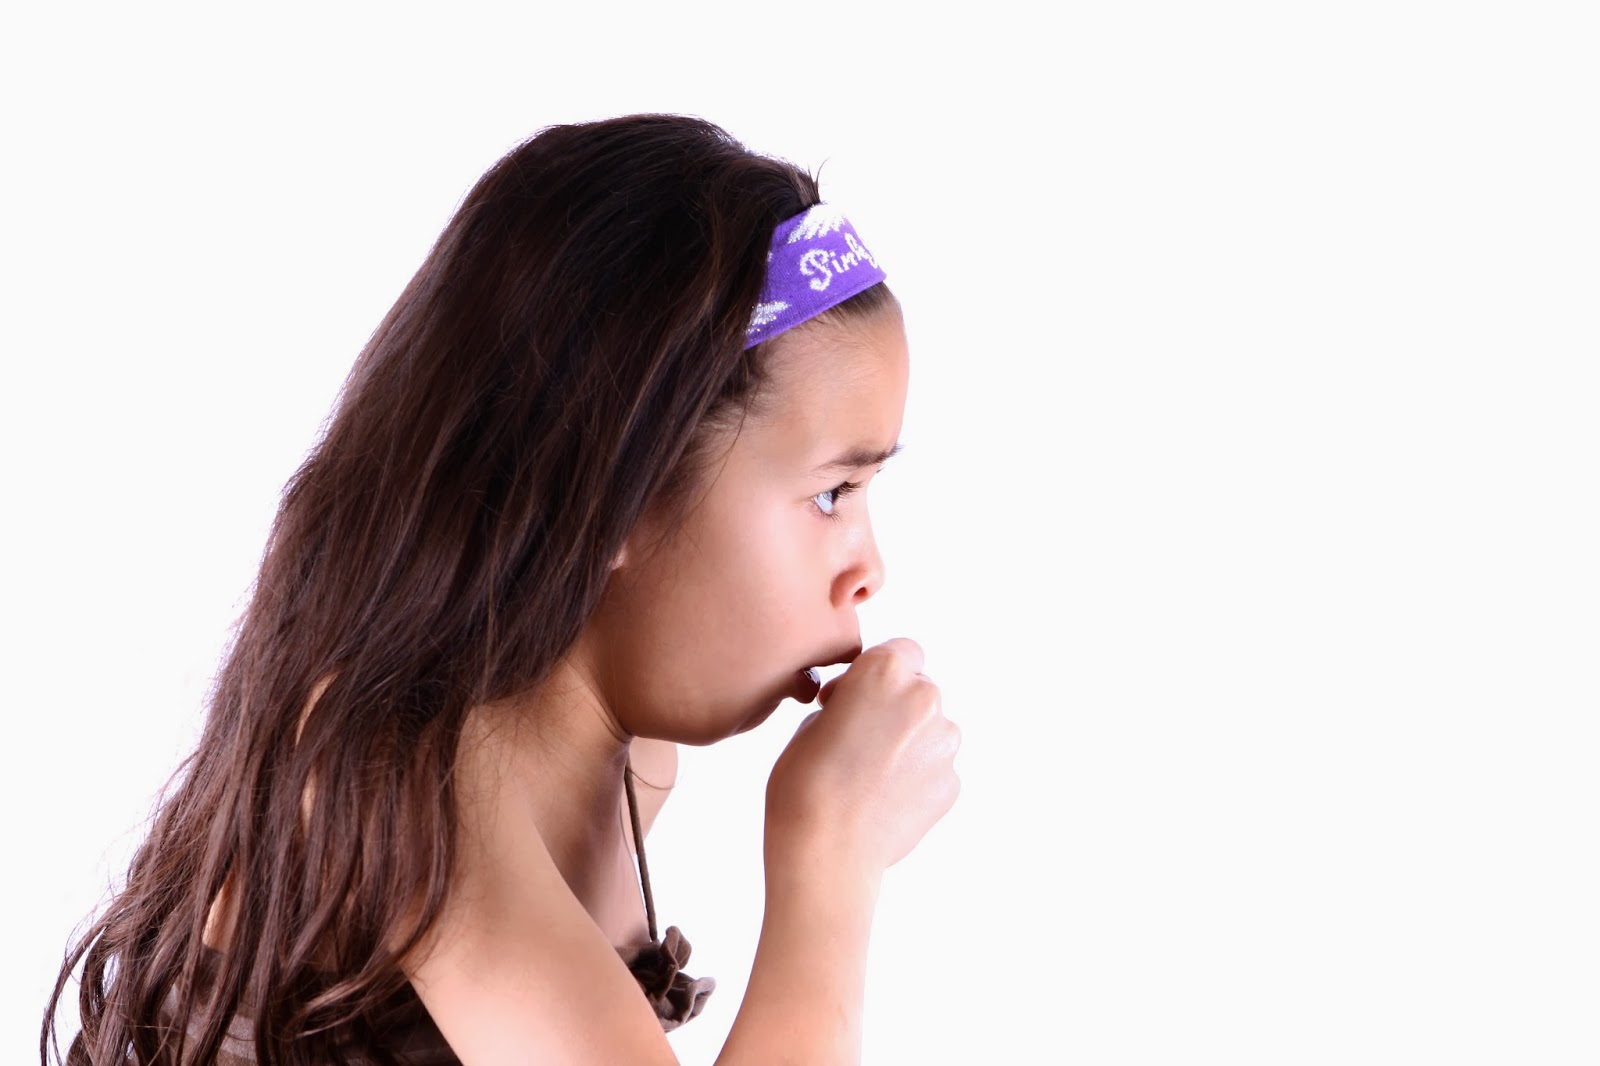 Watch Whooping Cough Treatment video